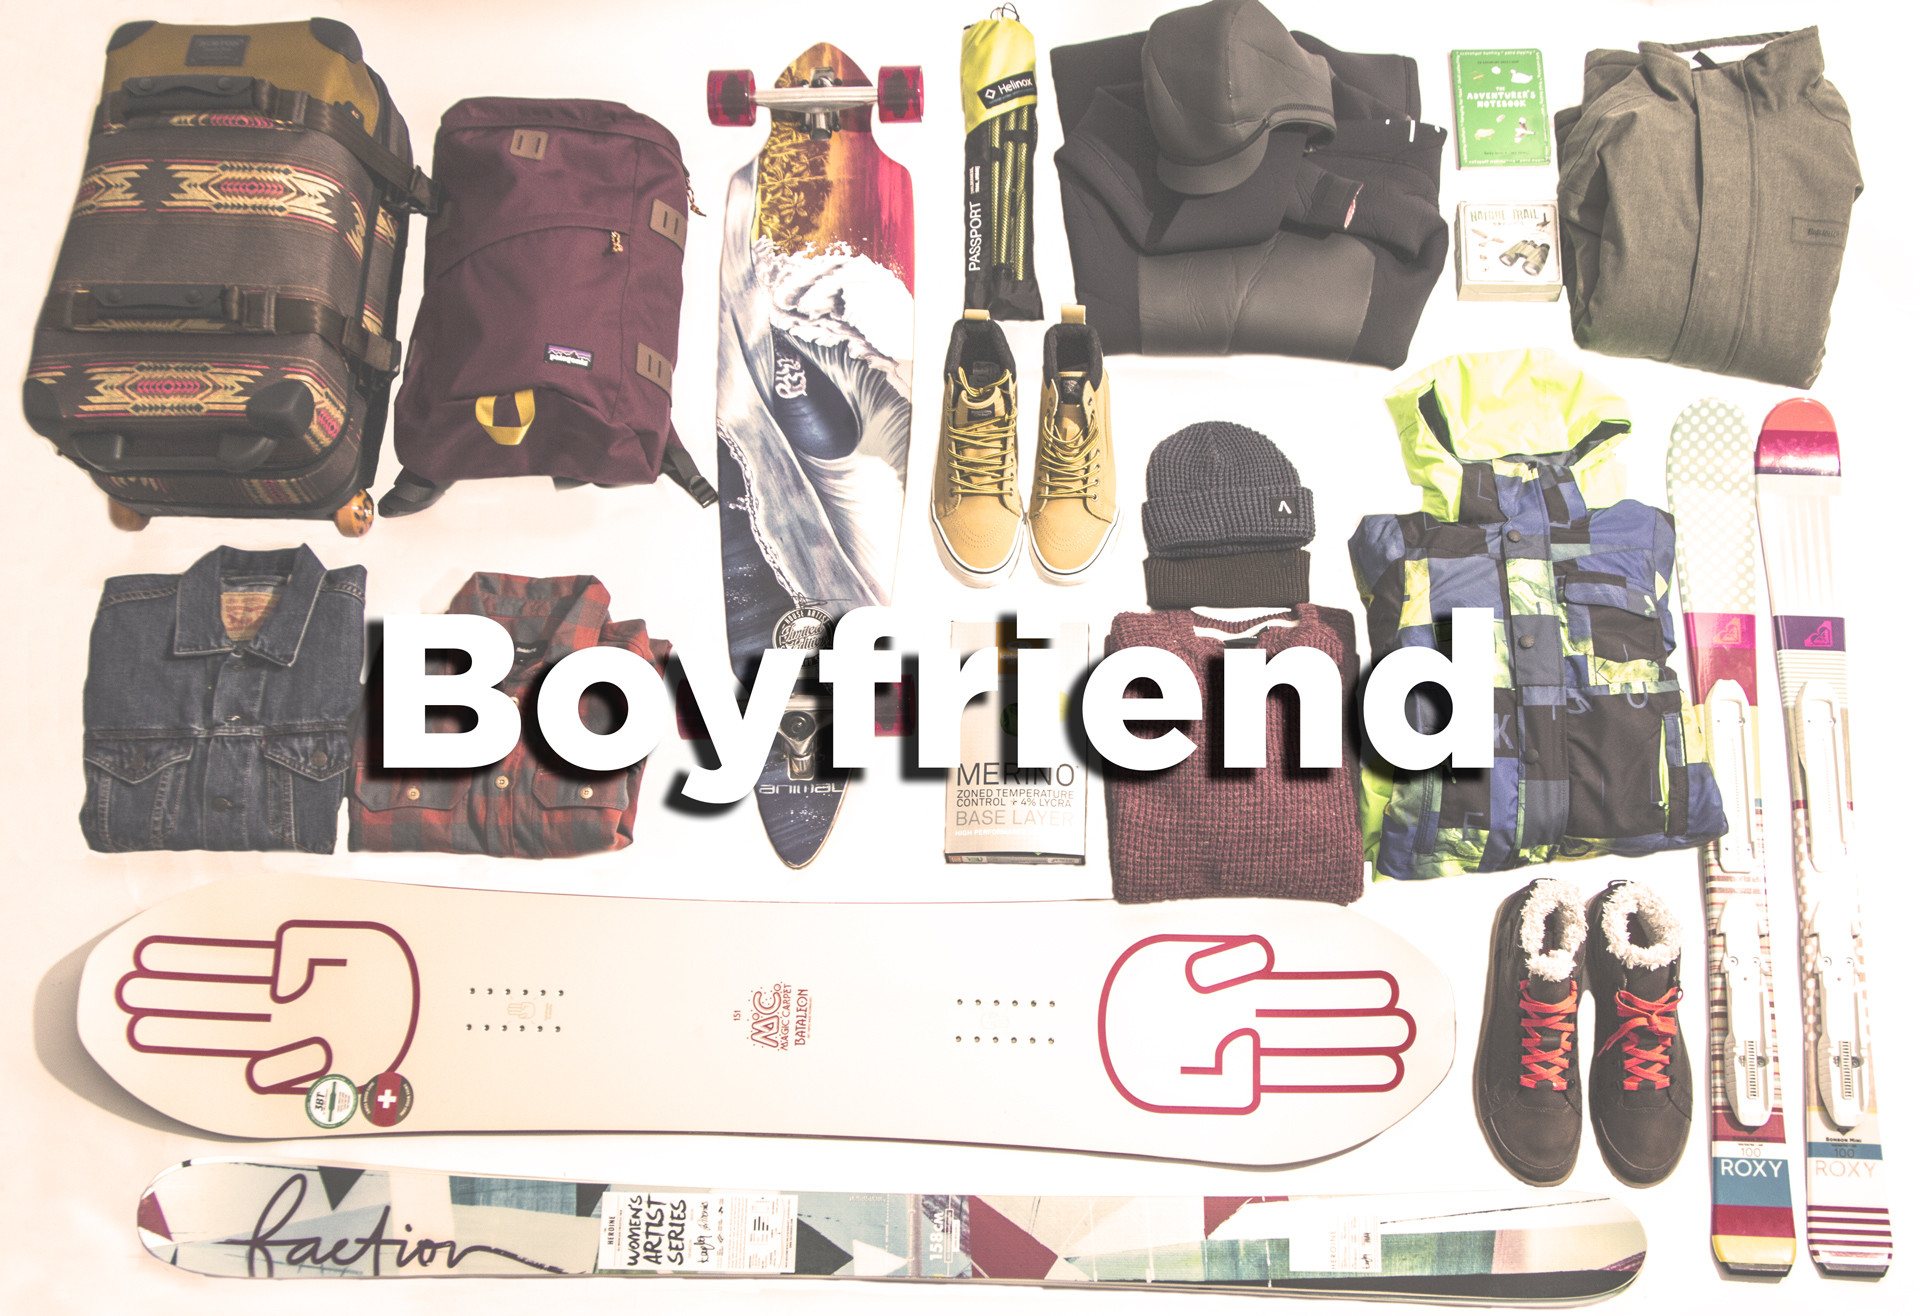 Best ideas about Holiday Gift Ideas For Boyfriend . Save or Pin Christmas Gift Ideas For A Boyfriend 15 Great Gifts Now.